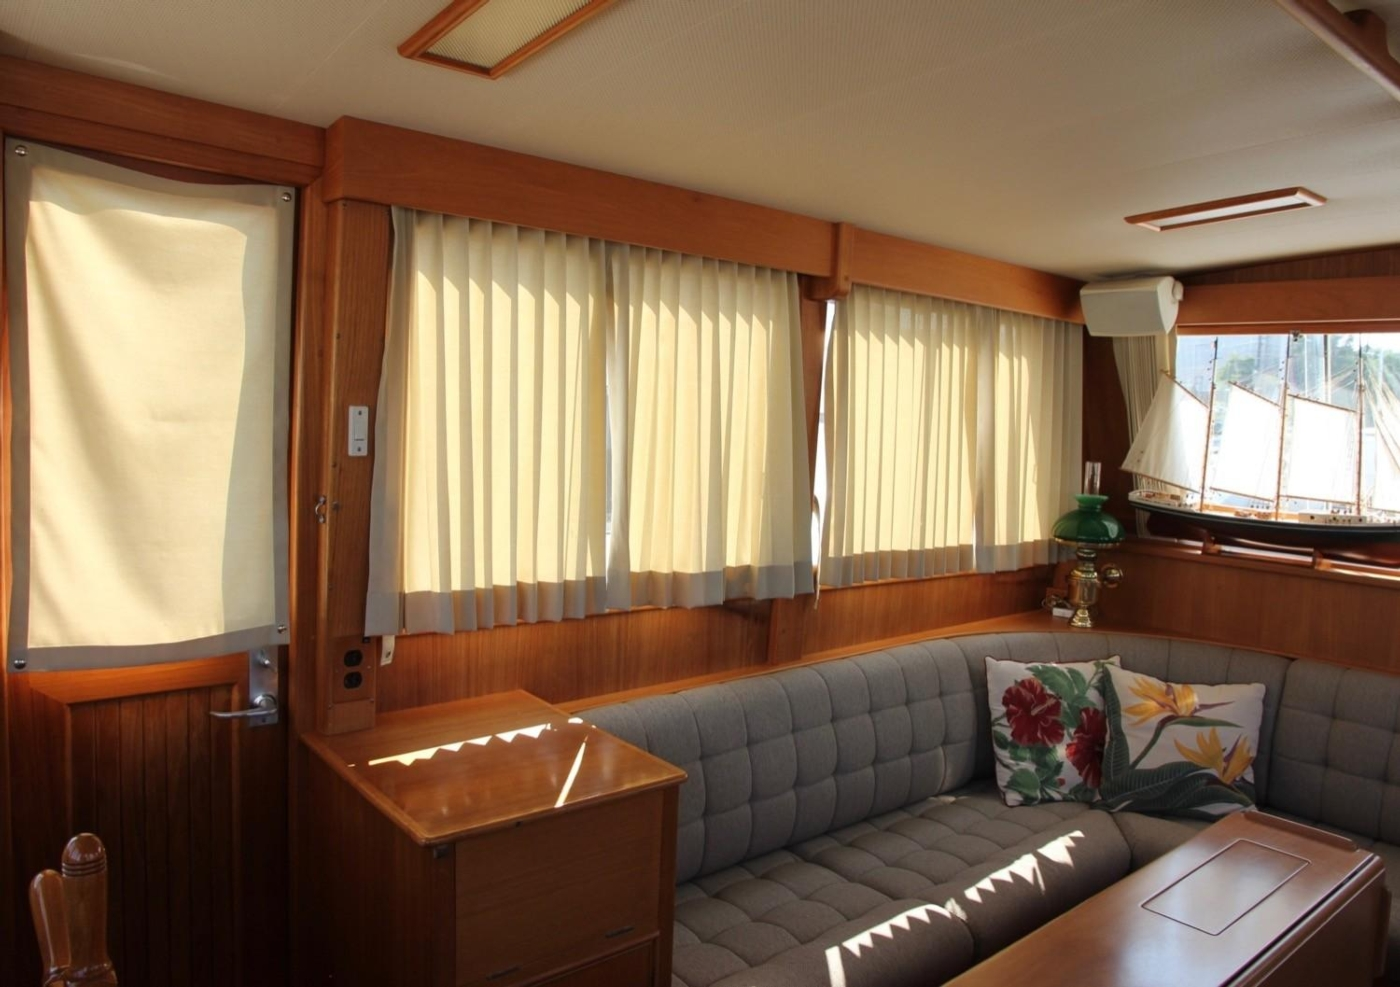 1995 Grand Banks Classic, Starboard Salon Looking Aft